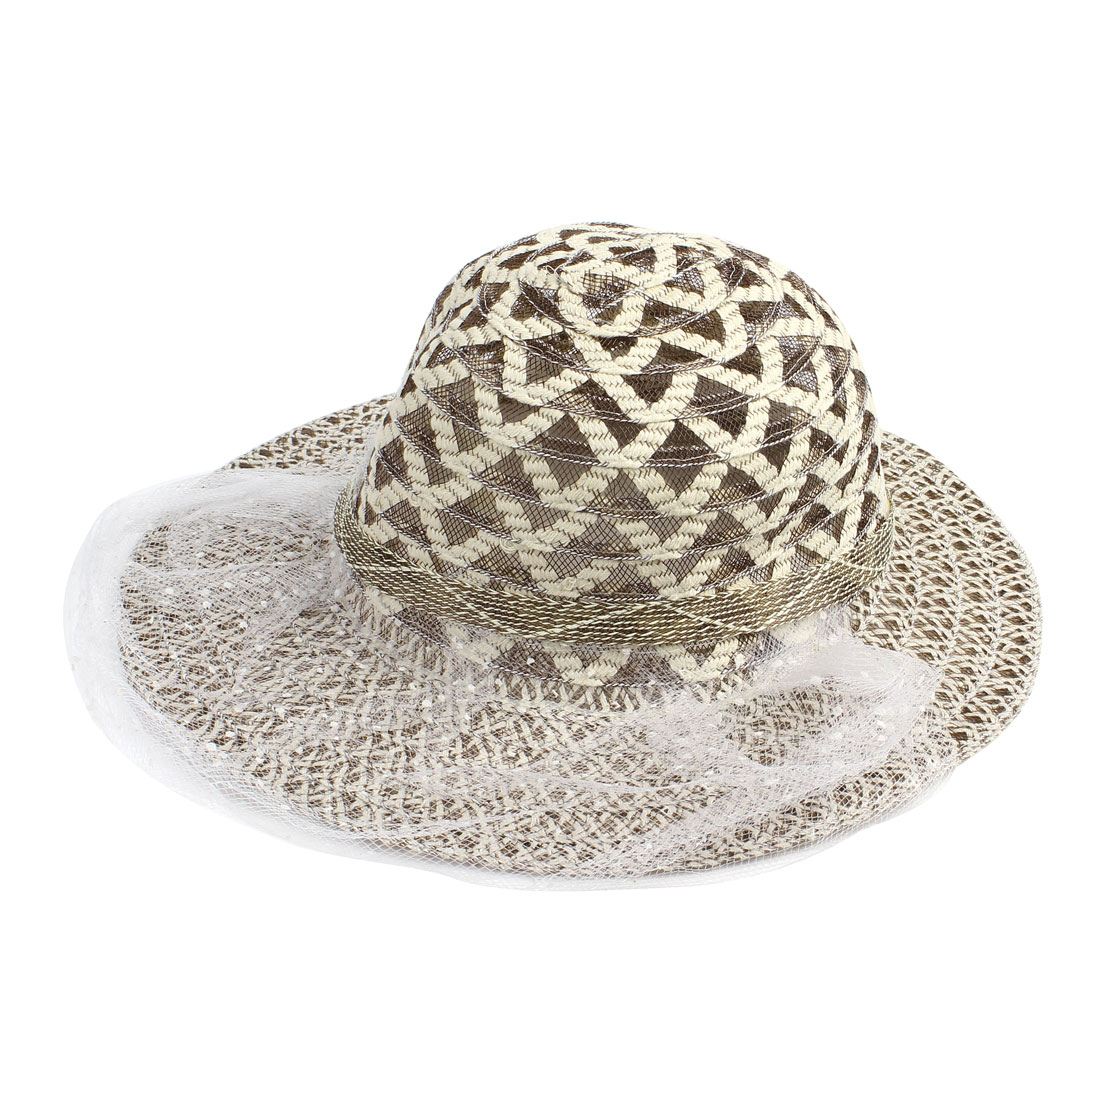 White Beige Lace Inlaid Sun Visor Boater Cap Hat for Women